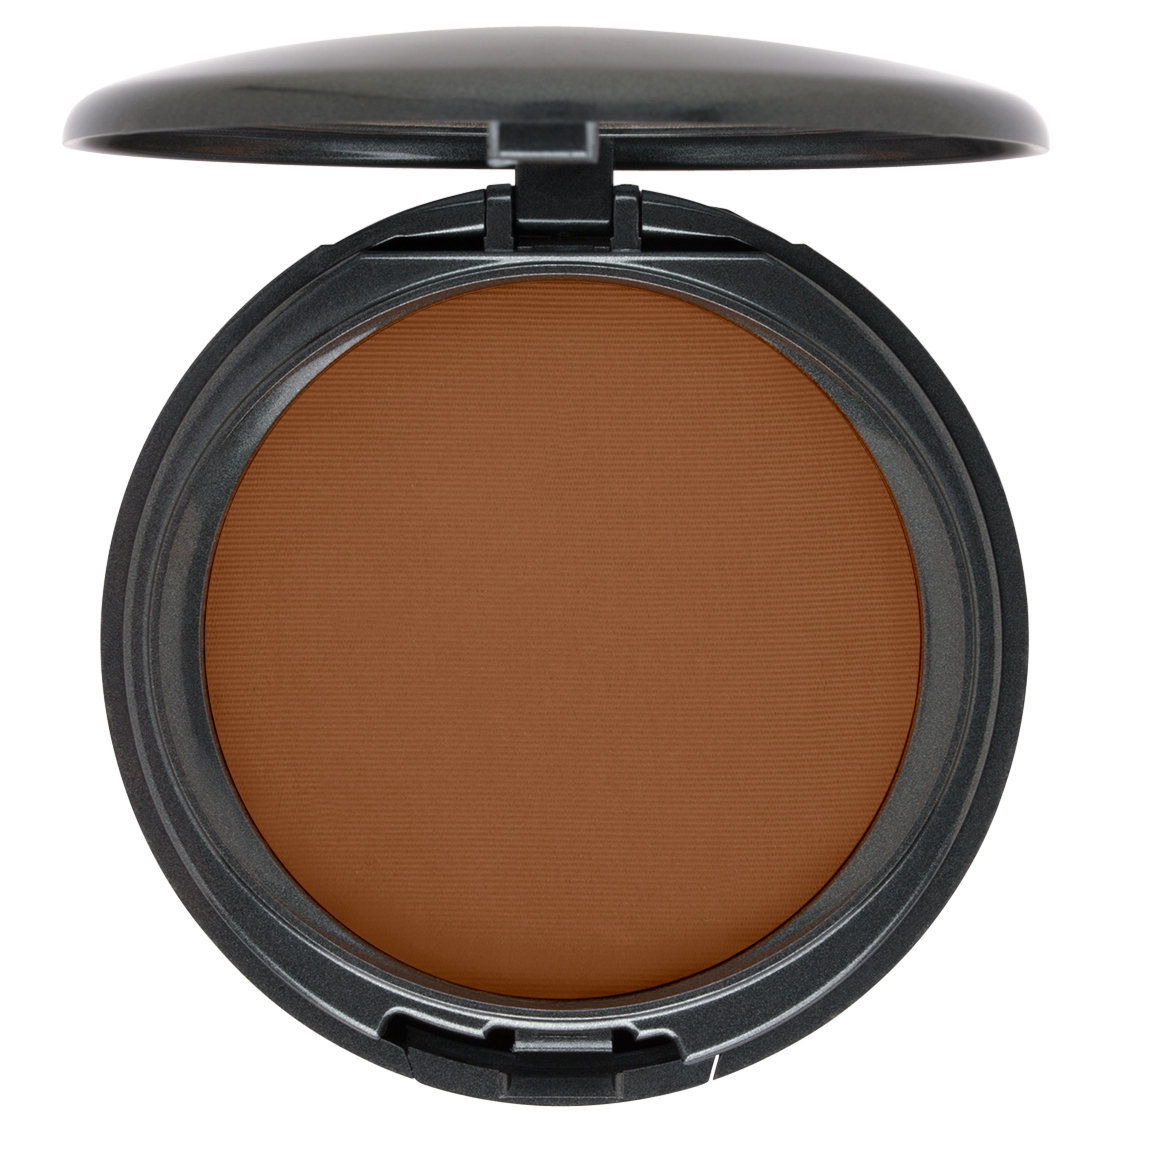 COVER | FX Pressed Mineral Foundation N100 alternative view 1 - product swatch.